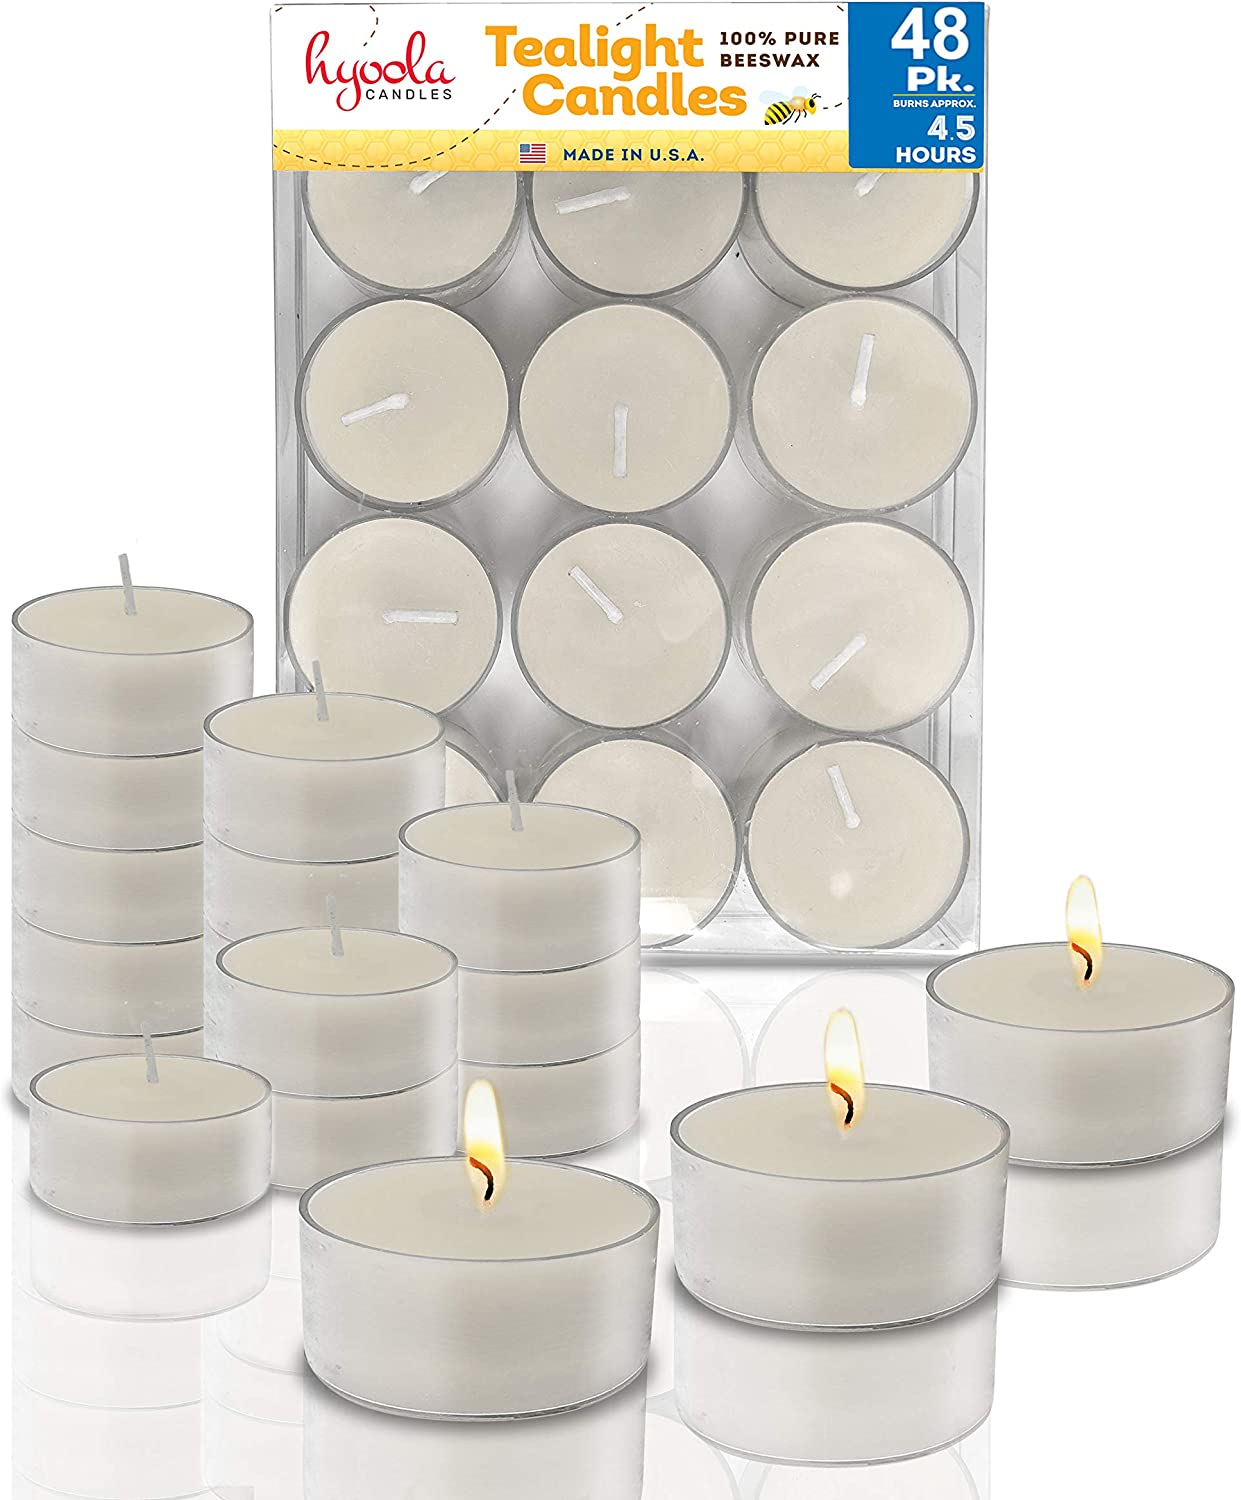 Hyoola White Beeswax Tea Light Candles – 48 Pack – Decorative Unscented Natural Tealight Candles for Home, Centerpieces – 4 Hour Burn Time, Clear Cup